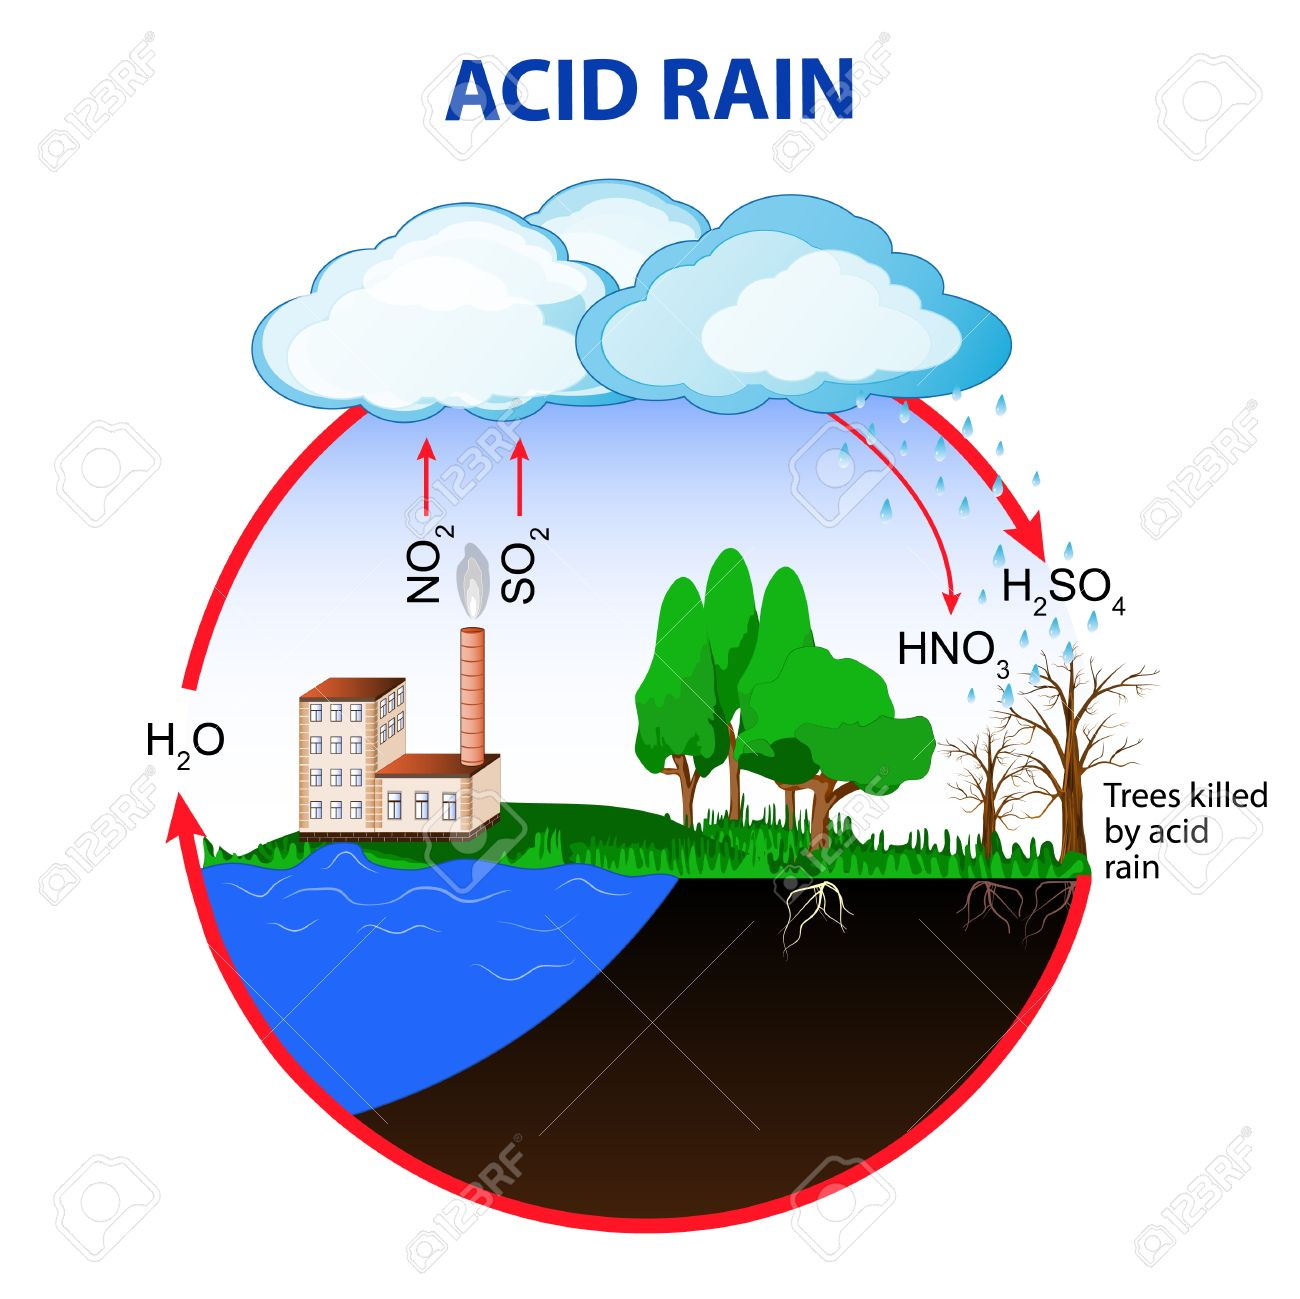 hight resolution of acid rain is caused by emissions of sulfur dioxide and nitrogen oxide which react with